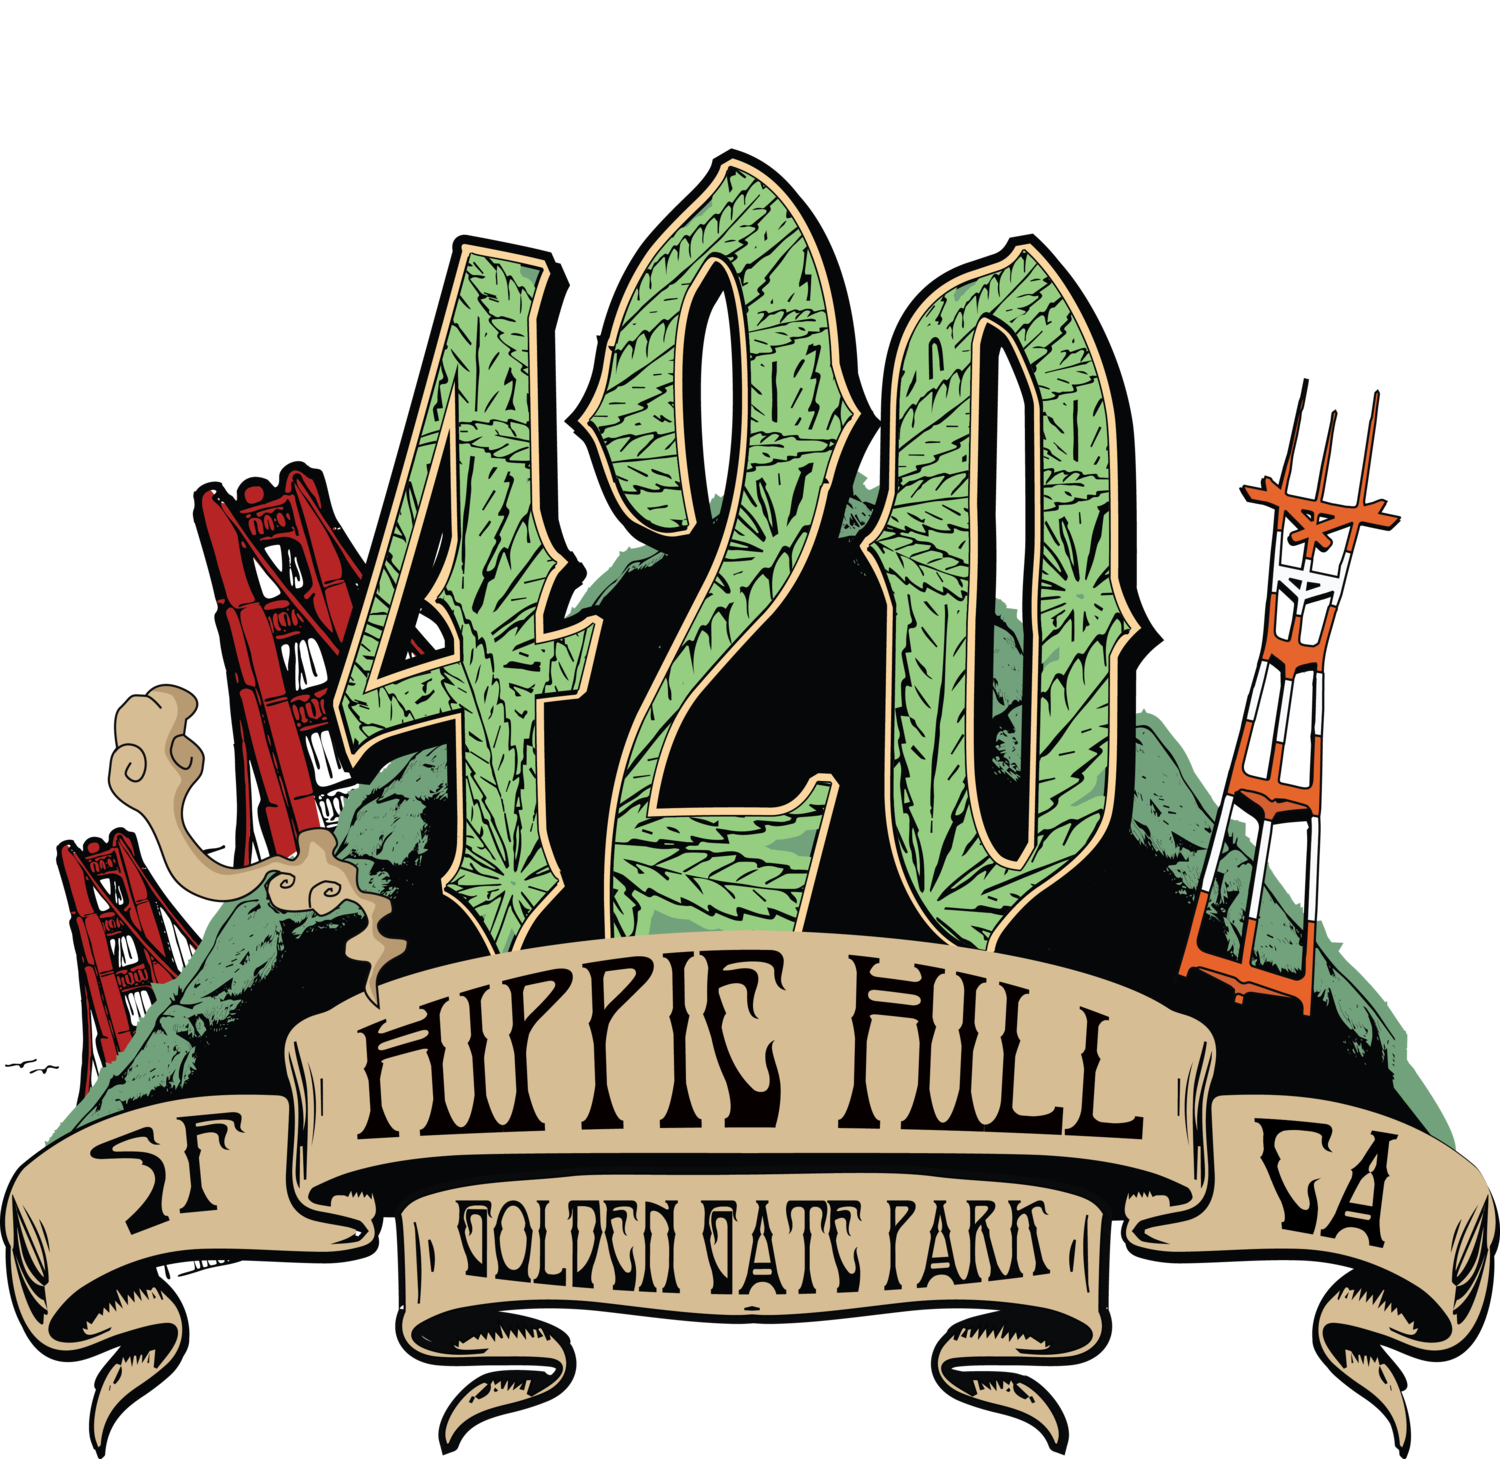 420 transparent png. Hippie hill sf